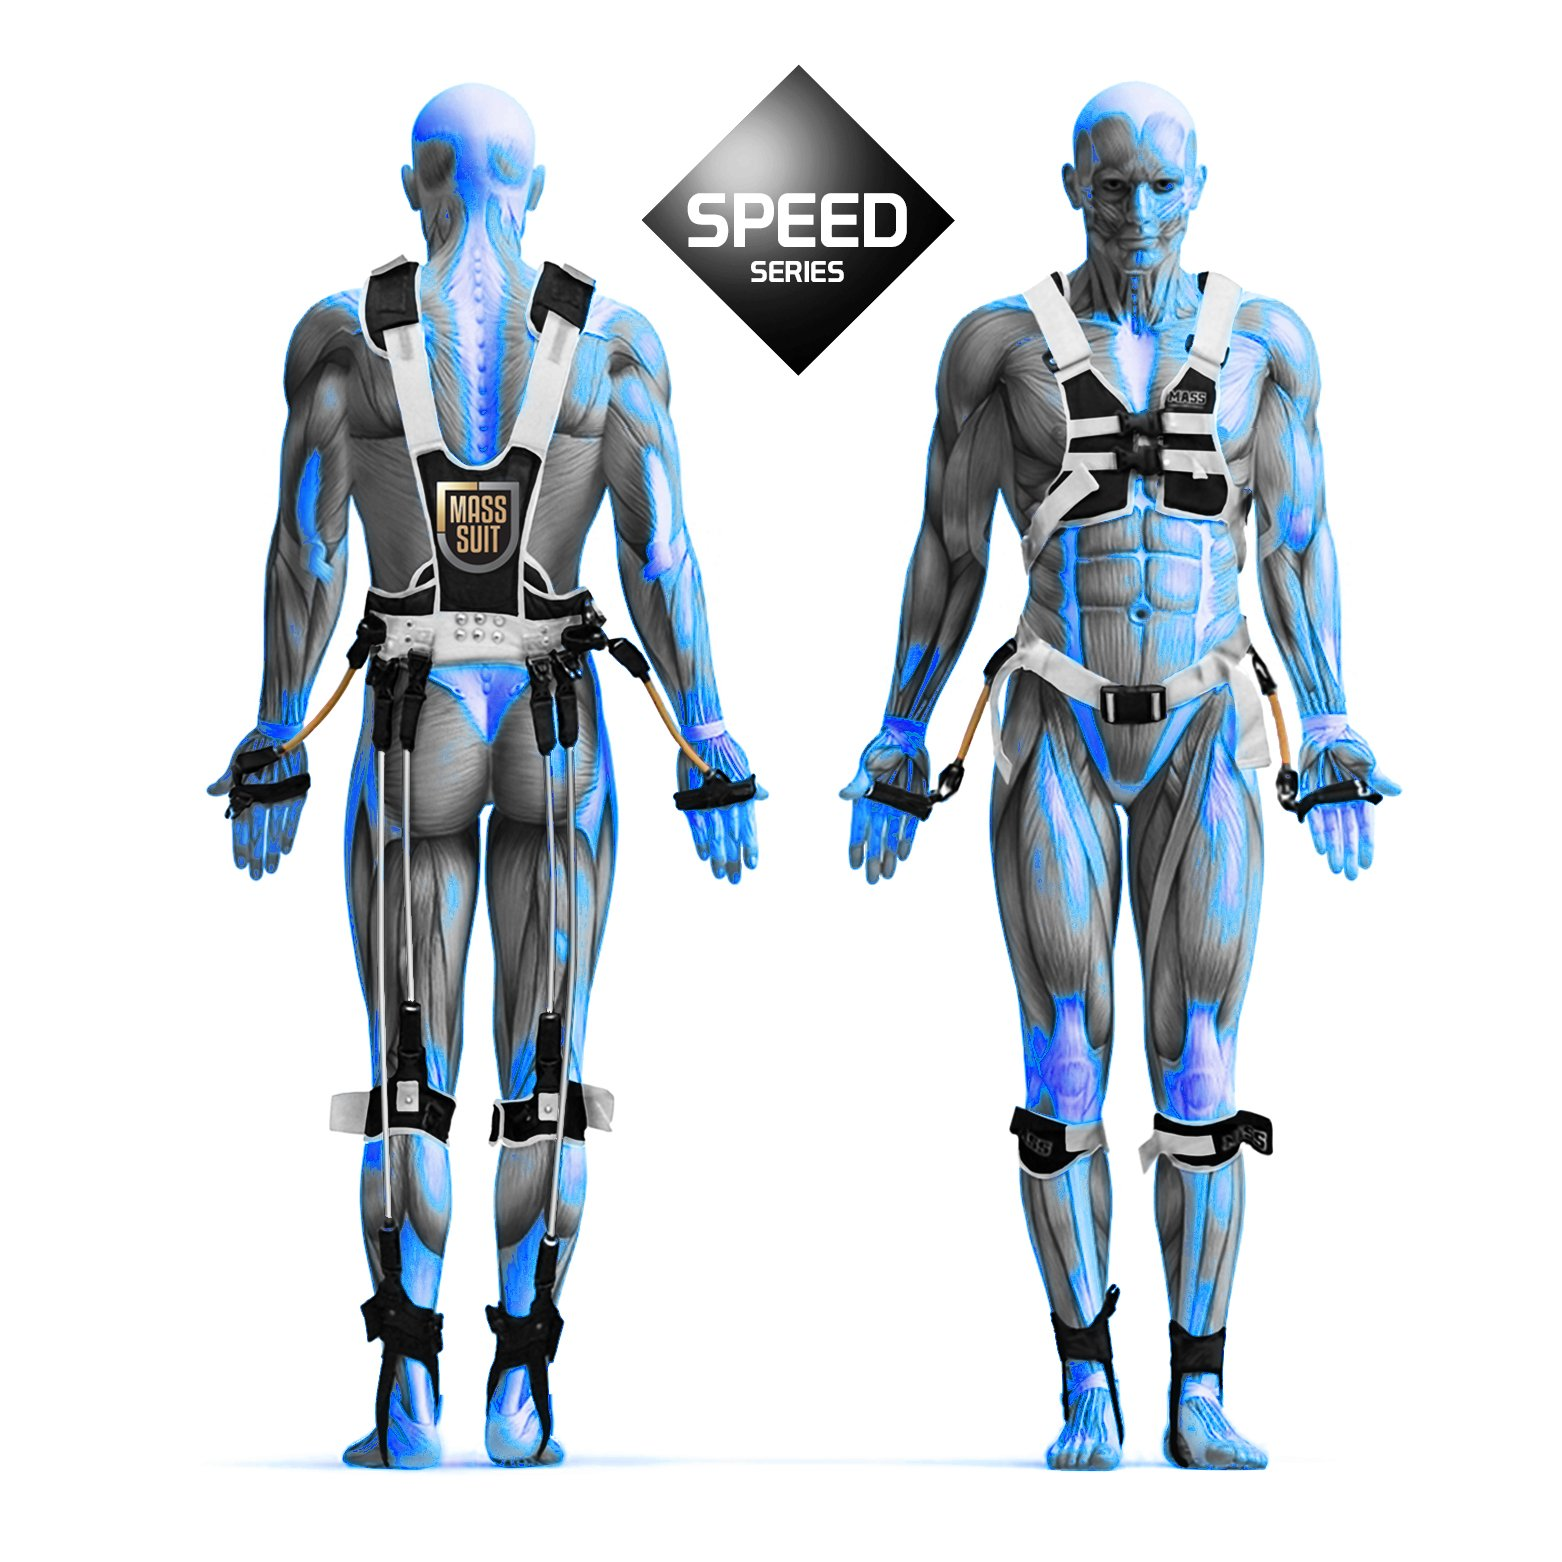 MASS Suit Speed Series by Juke Performance - Professional grade athletic speed training system - Full body resistance exercise equipment - Athletic sports system for football, basketball & Soccer.